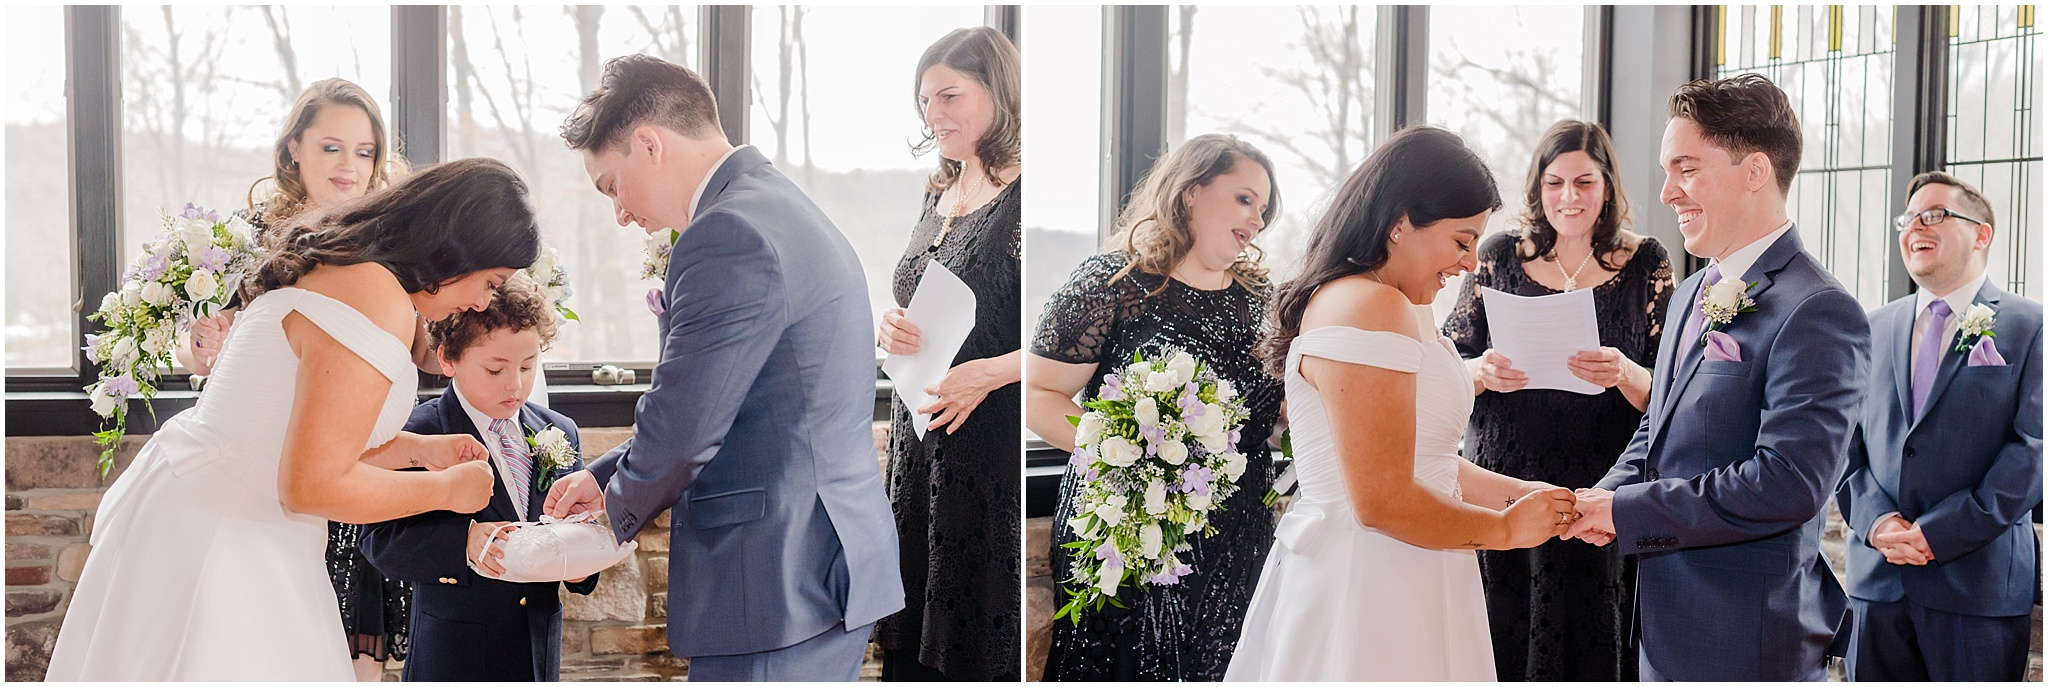 bride and groom get rings from ring bearer and exchange rings, NJ elopement